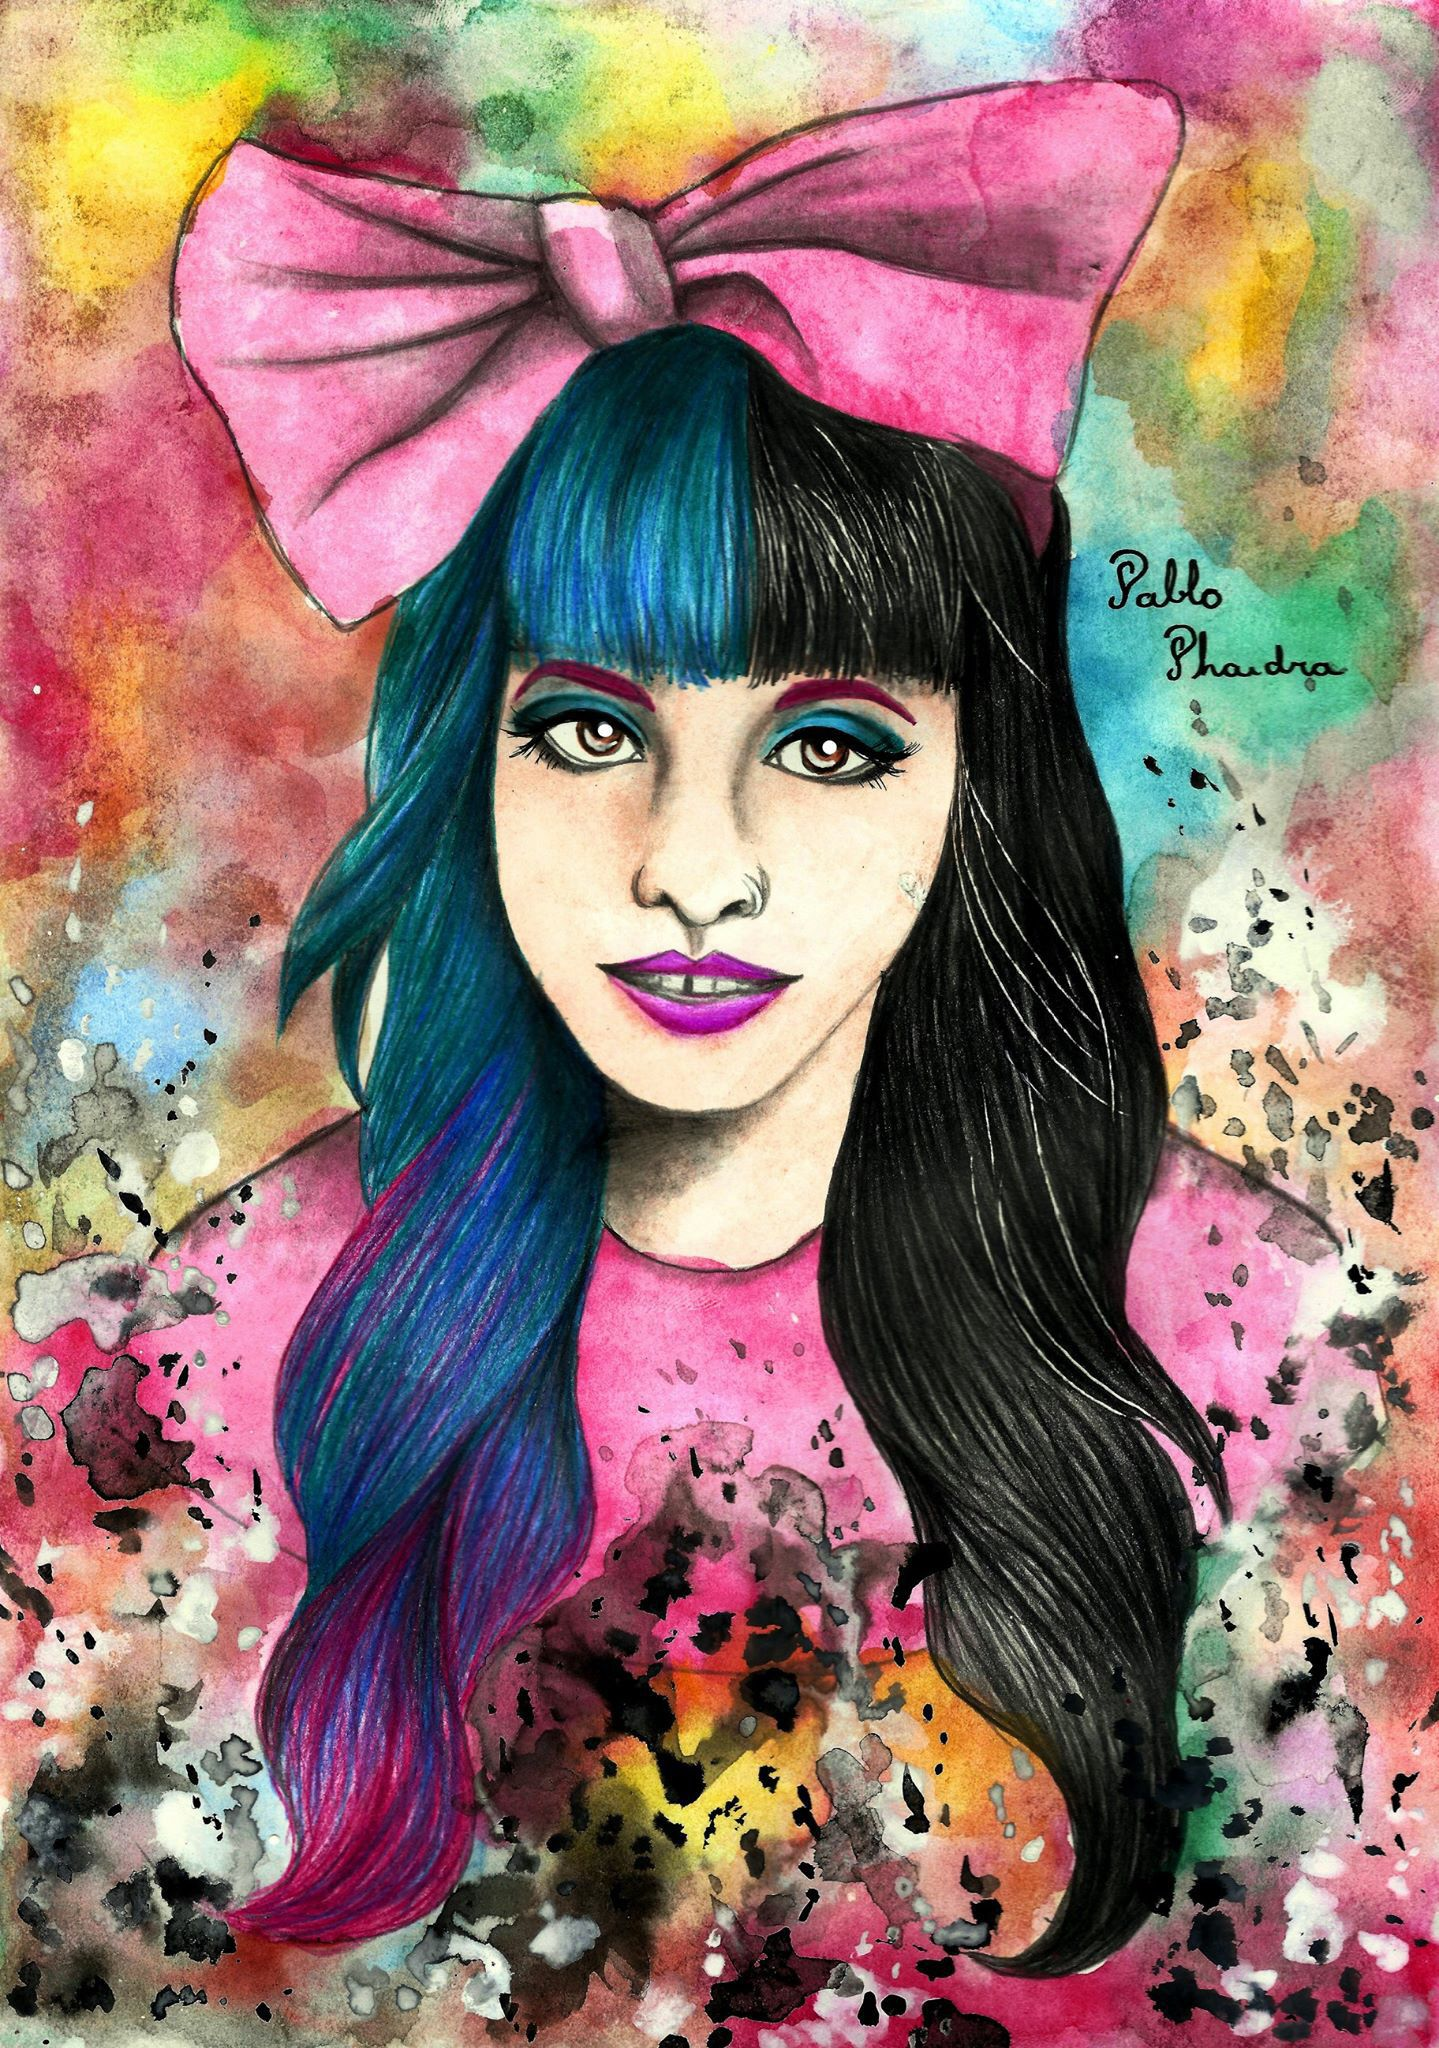 Melanie Martinez artwork by Pablo Phaedra.. Check out his facebook page Phaedrawing